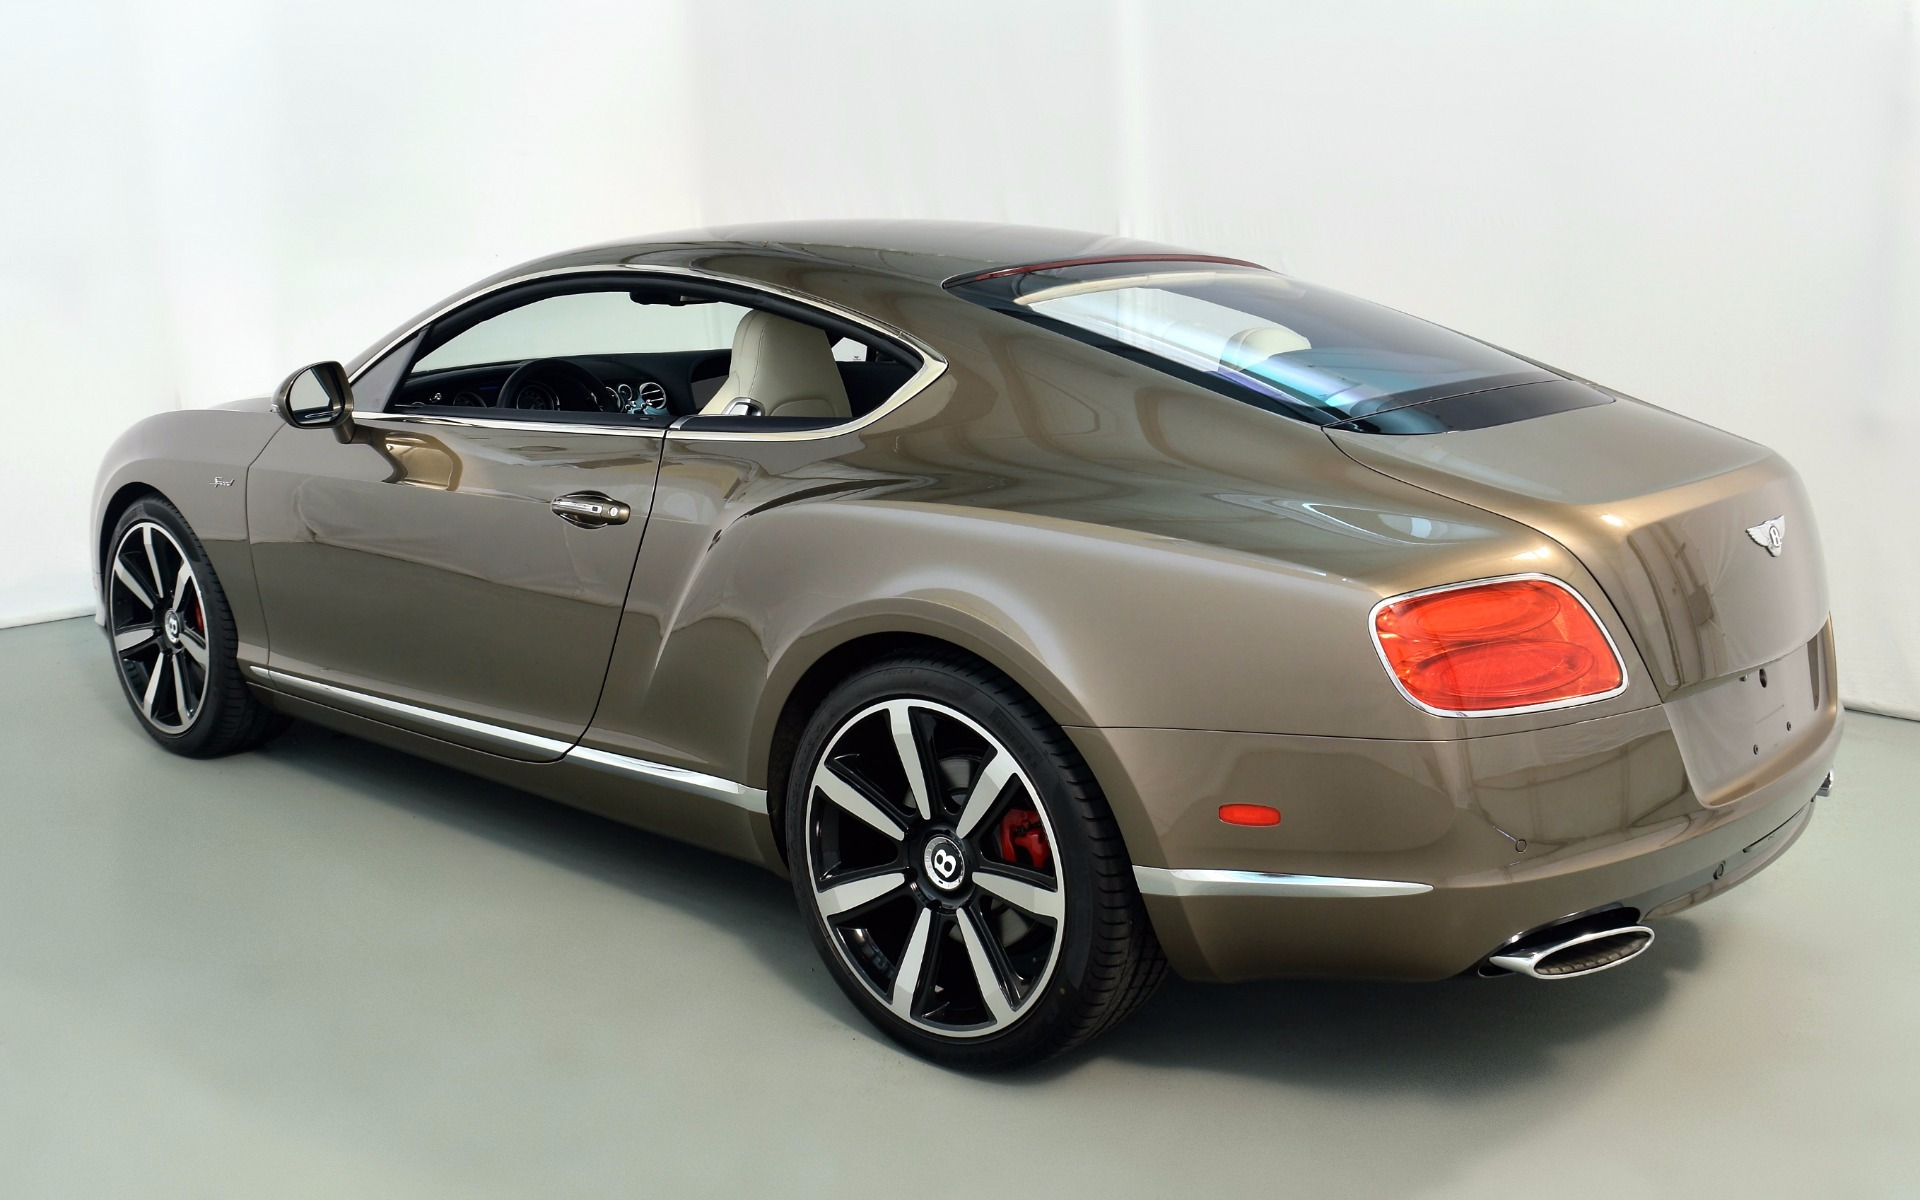 2015 Bentley Continental GT Speed For Sale in Norwell, MA 045600 ...